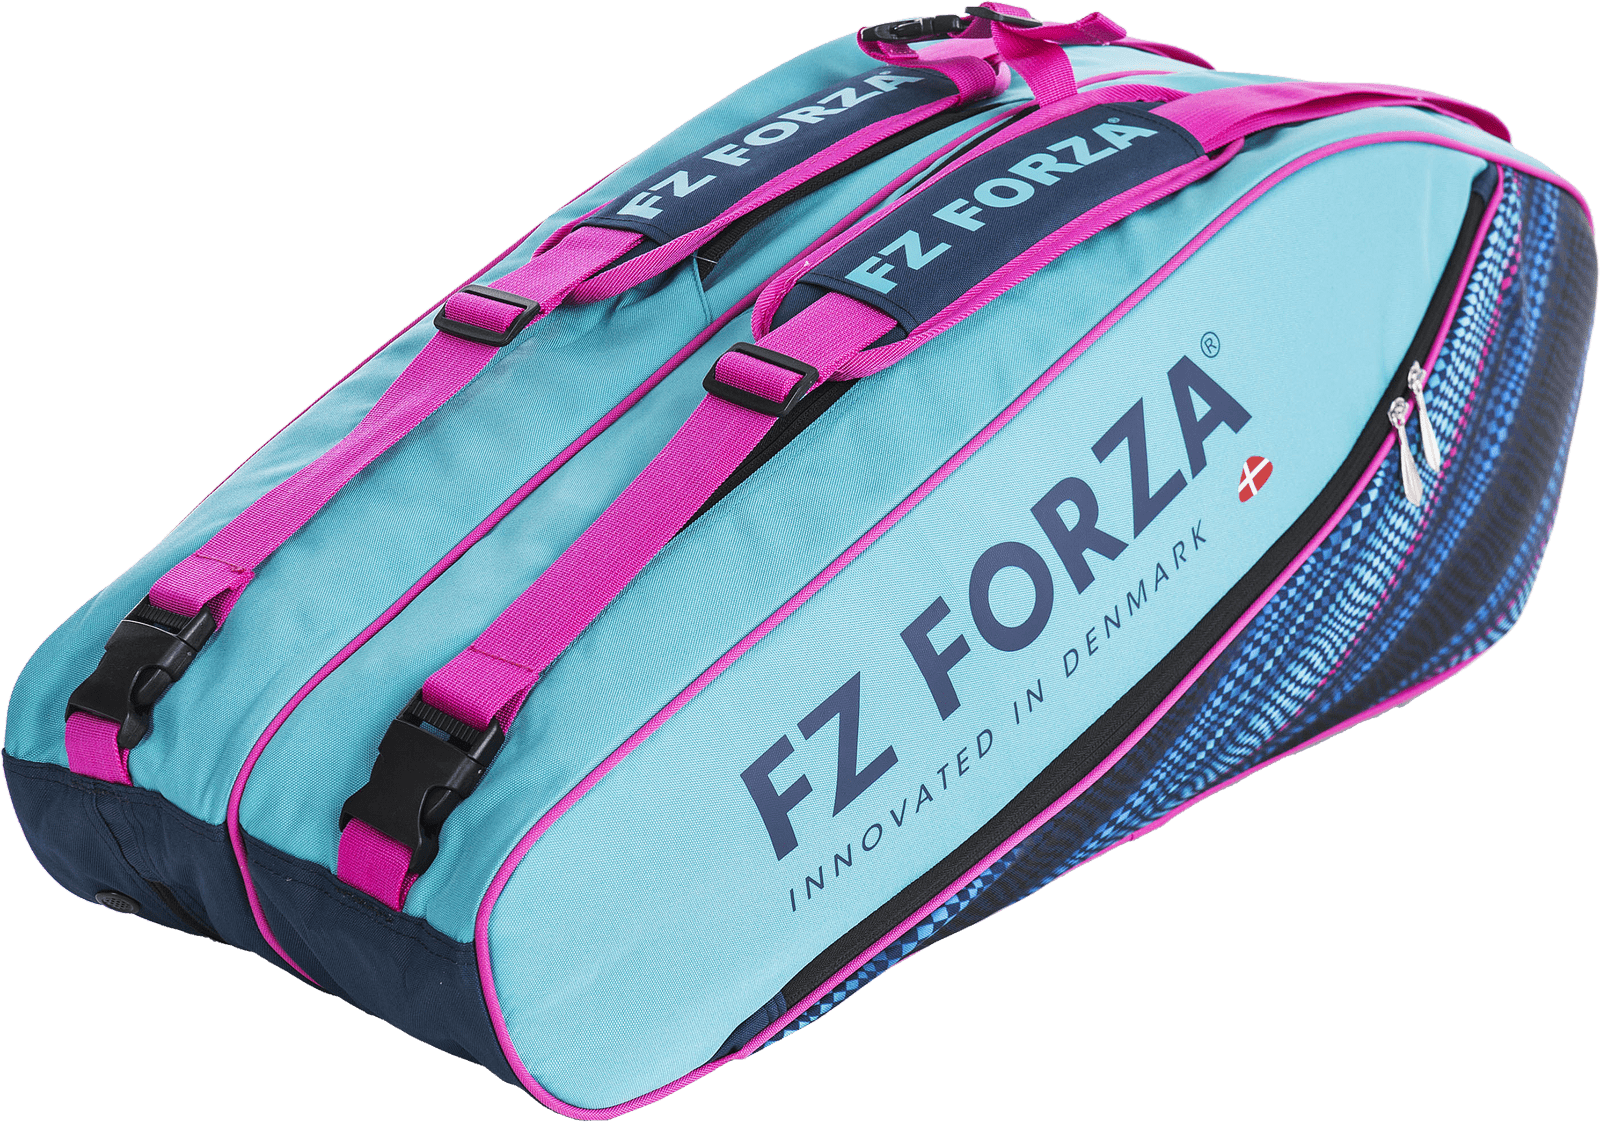 Forza Linky Racket Bag